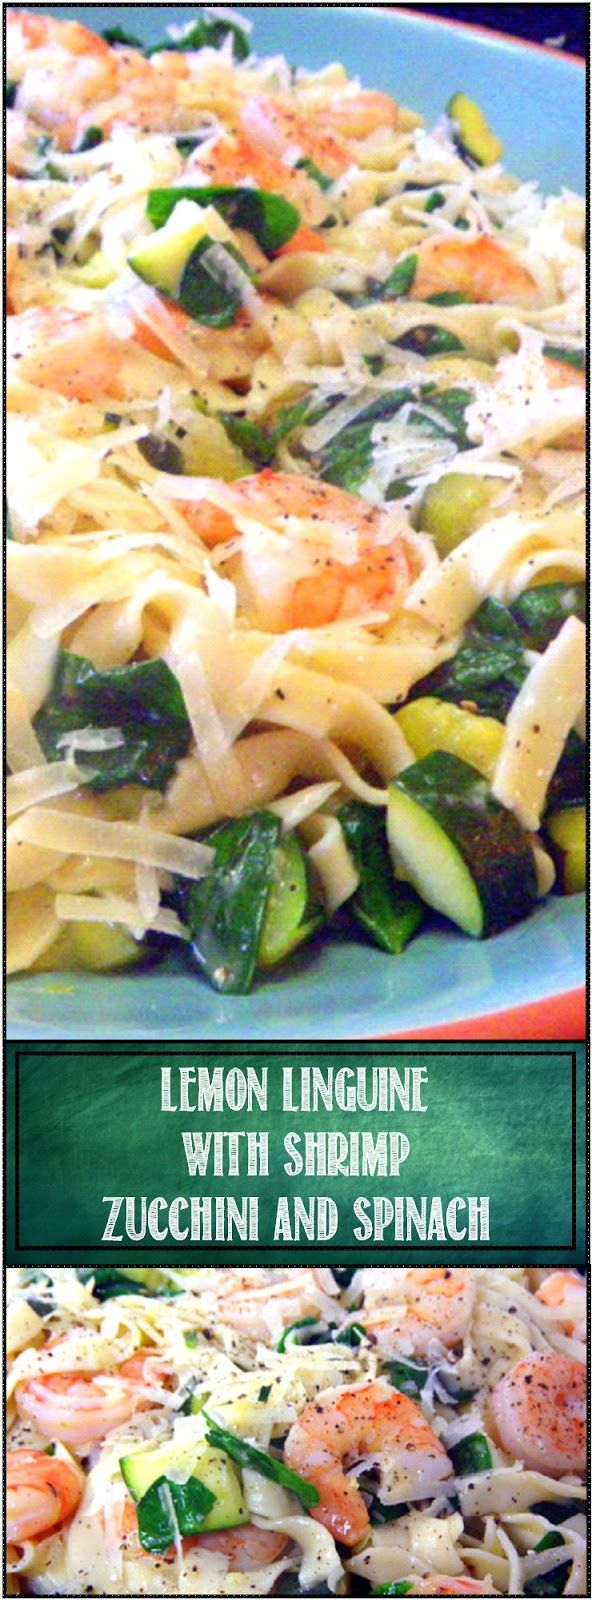 Lemon Linguine with Shrimp, Zucchini and Spinach Linguine con Gamberi verdure e olio al limone This became my wife's favorite pasta... The Lemon sauce compliments the pasta, flavors the shrimp, perfectly pairs with the zucchini and wilts the spinach to perfection! BEST PASTA EVER! And easy and DELICIOUS